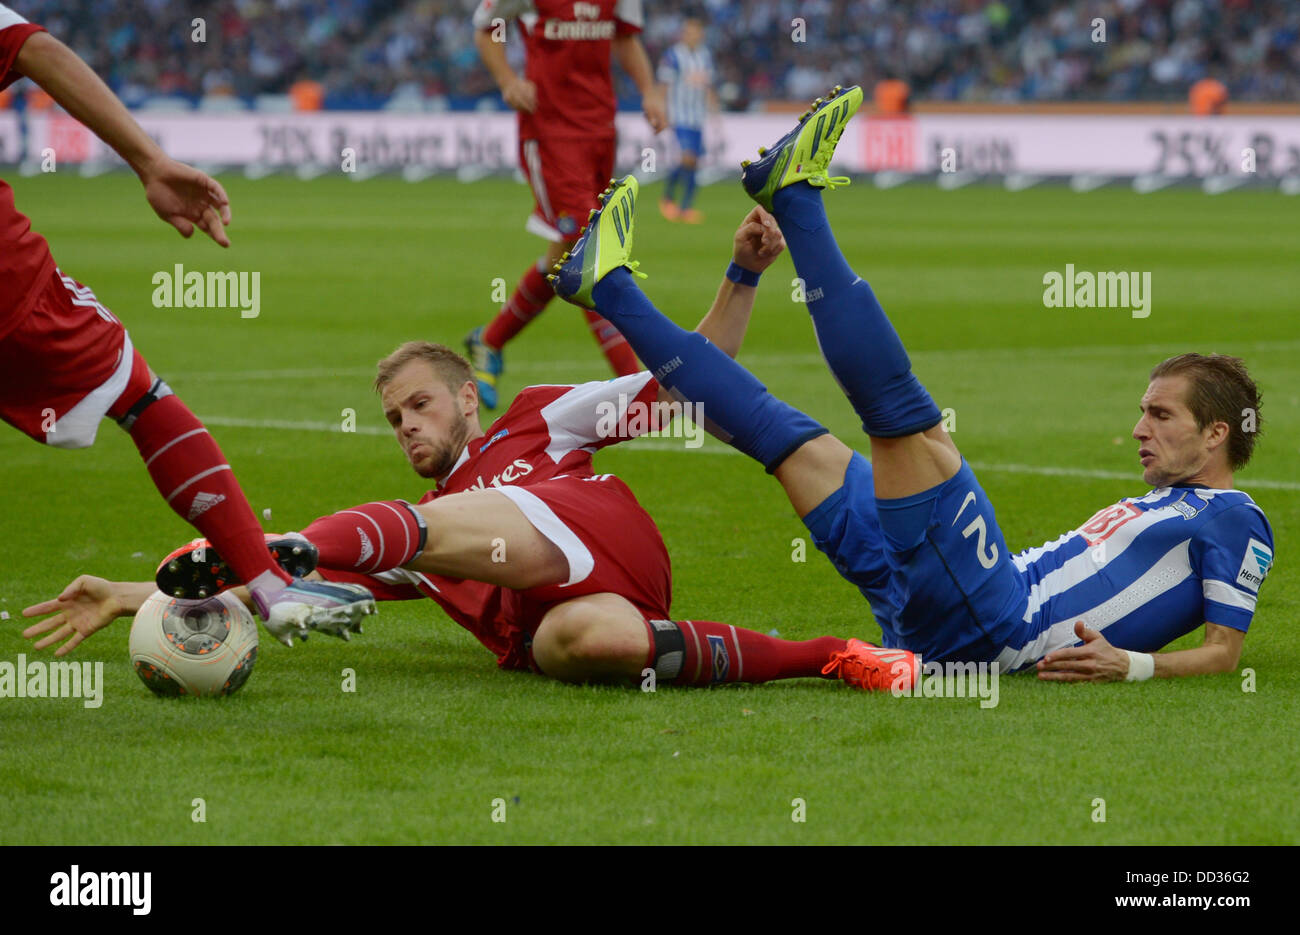 Berlin, Germany. 24th Aug, 2013. Hertha's Peter Pekarík and Hamburg's Maximilian Beister vie for the - Stock Image